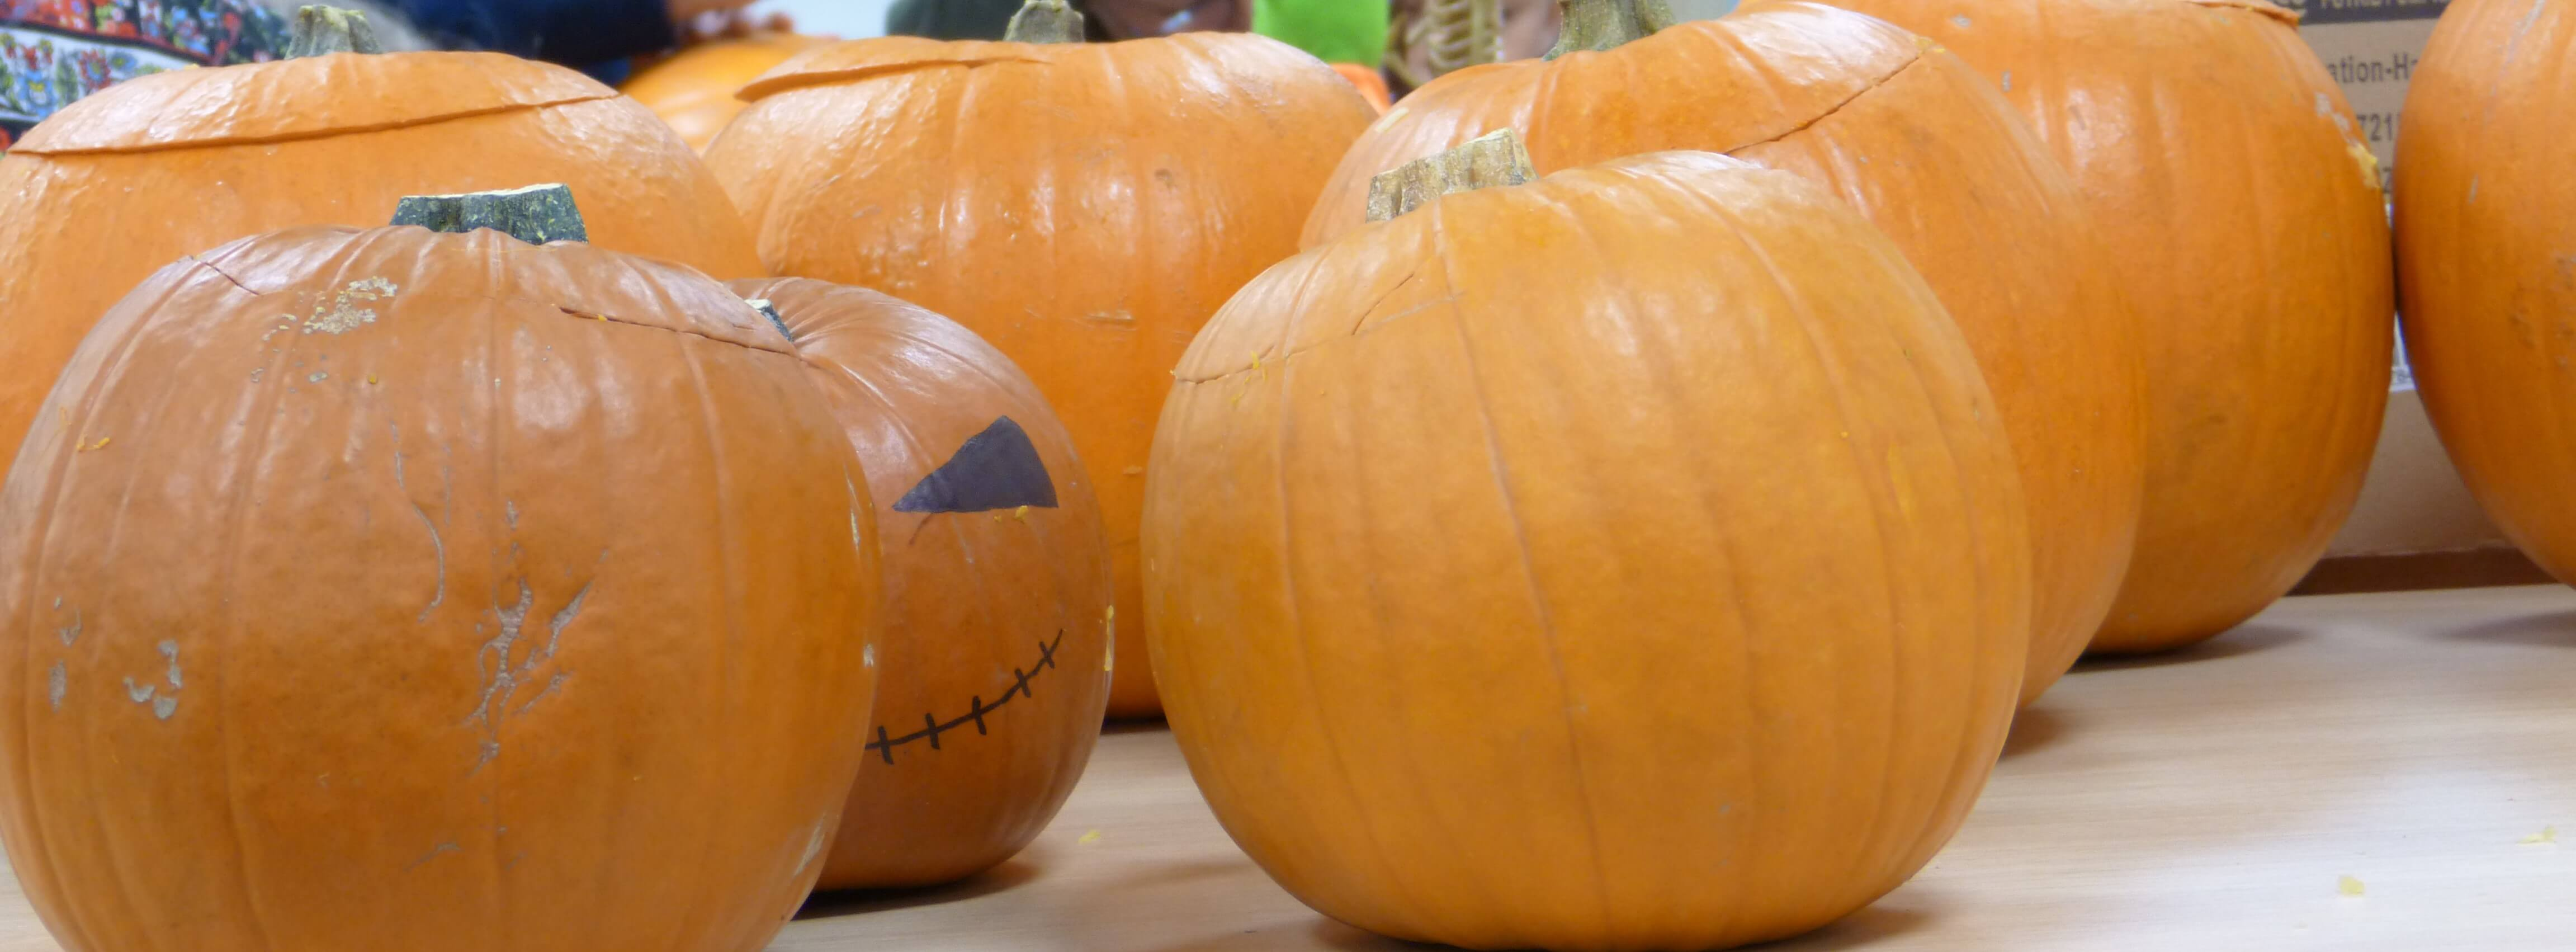 No spooks in Grimsby as 'Full Families' enjoy Halloween fun